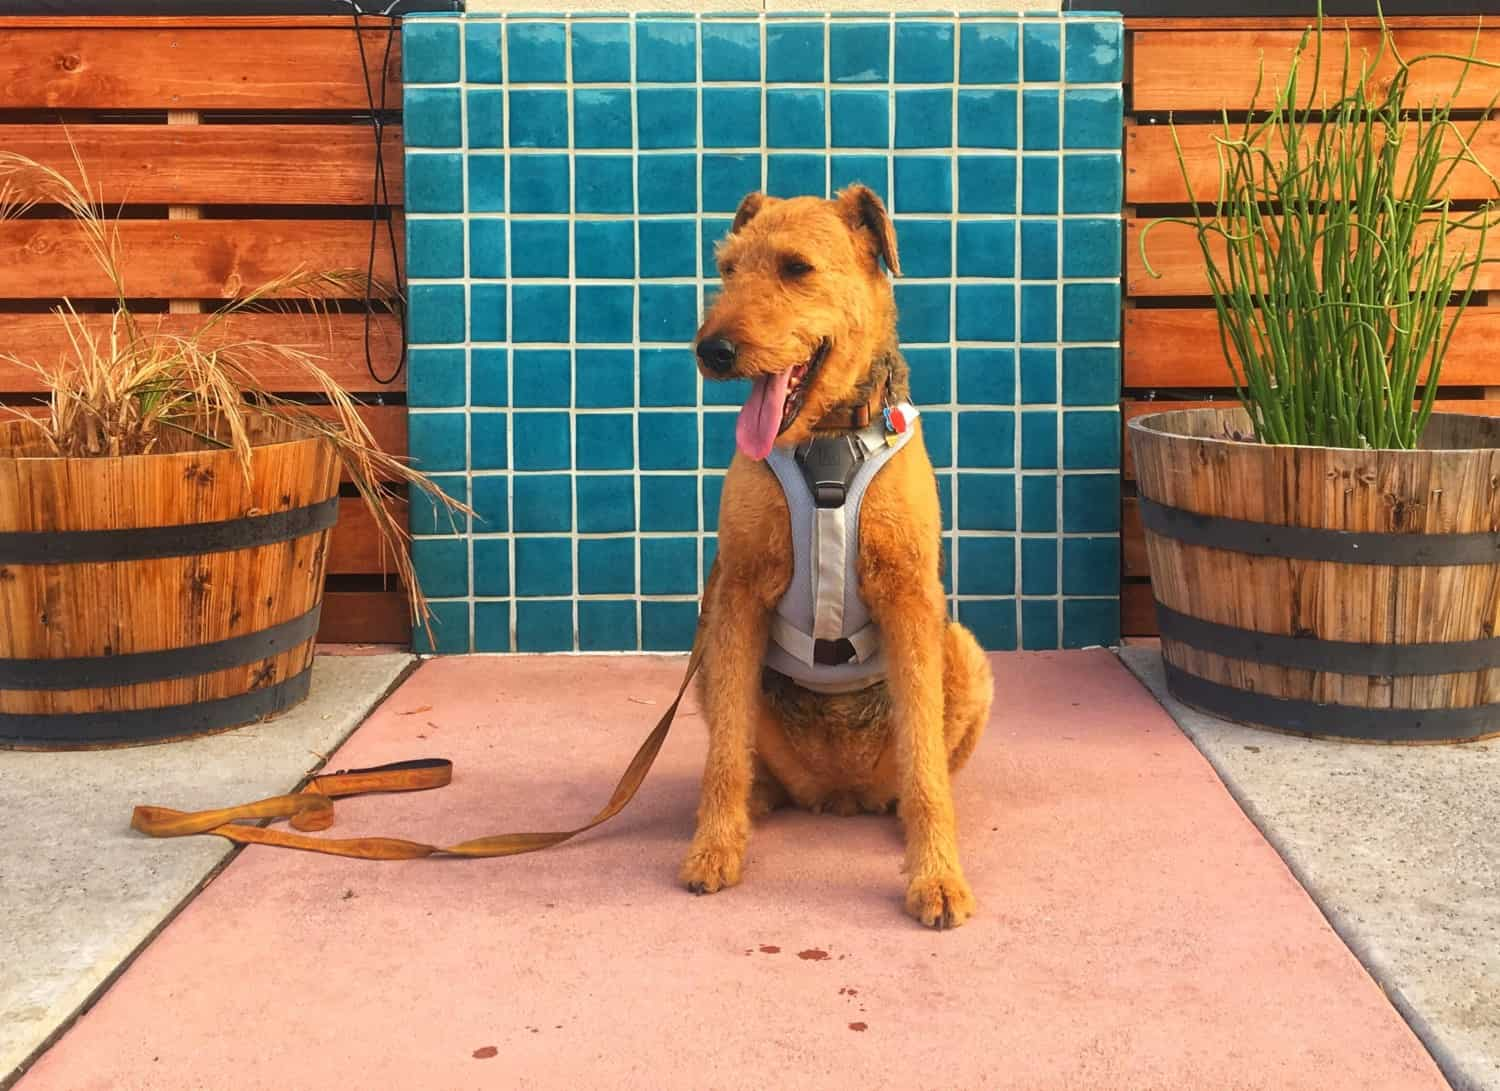 Airedale terrier in a dog cooling vest